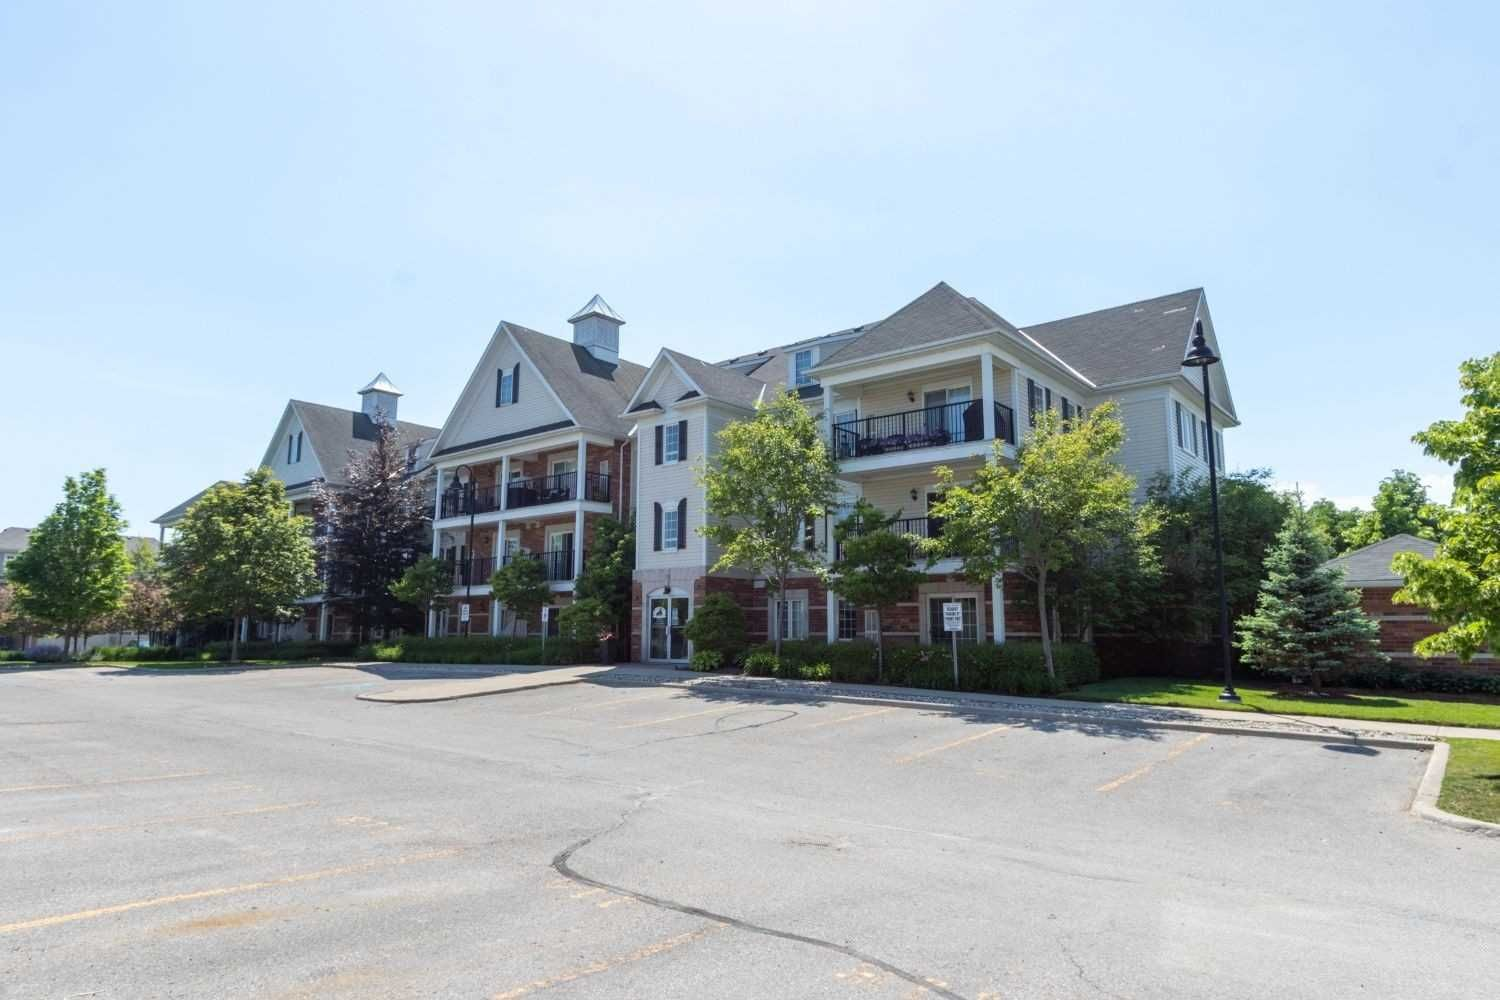 75 Shipway Ave, unit 102 for sale in Toronto - image #1